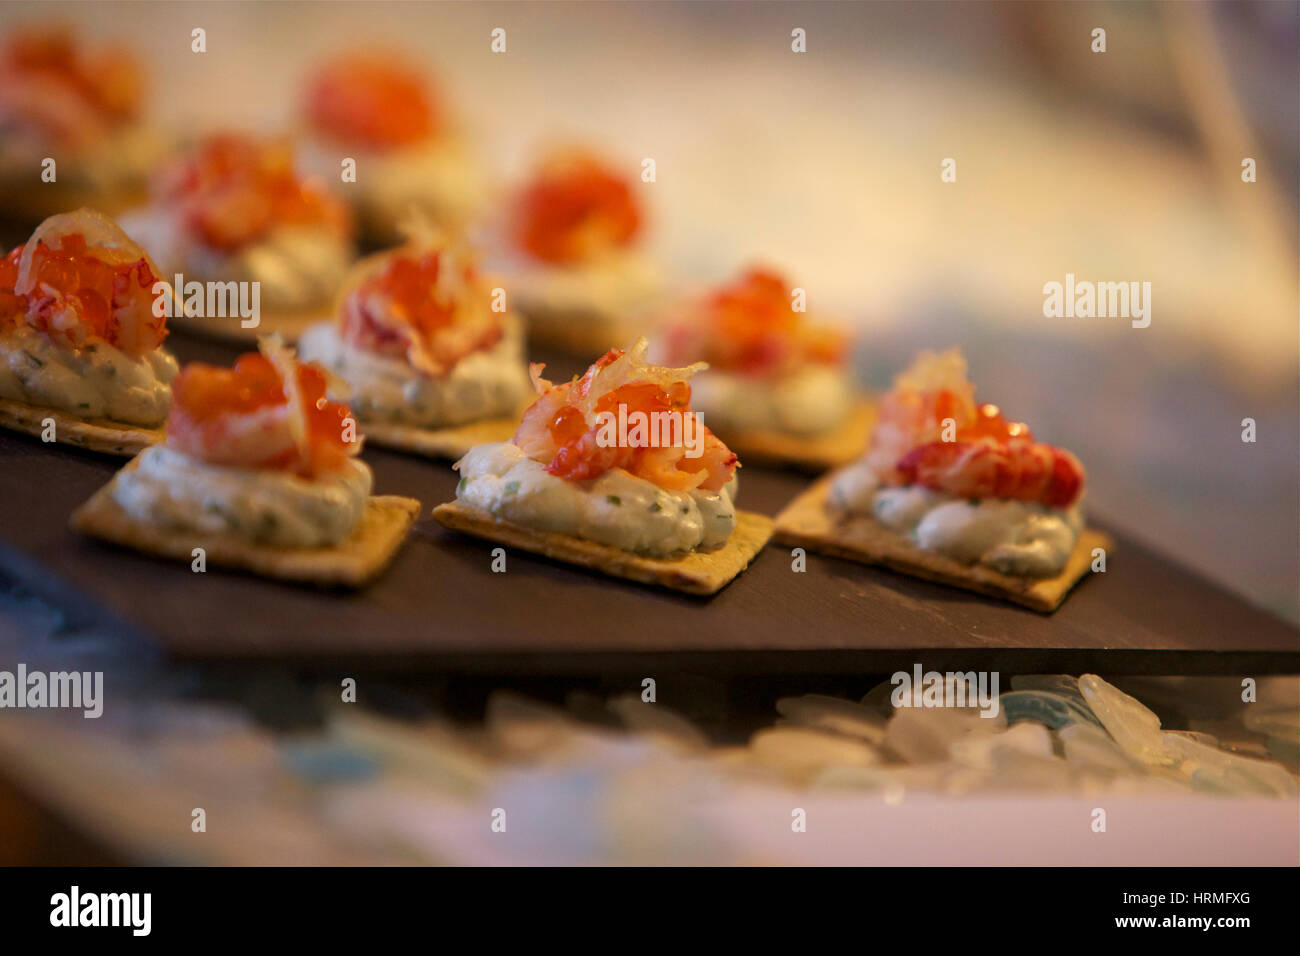 canapés at a dinner party - Stock Image